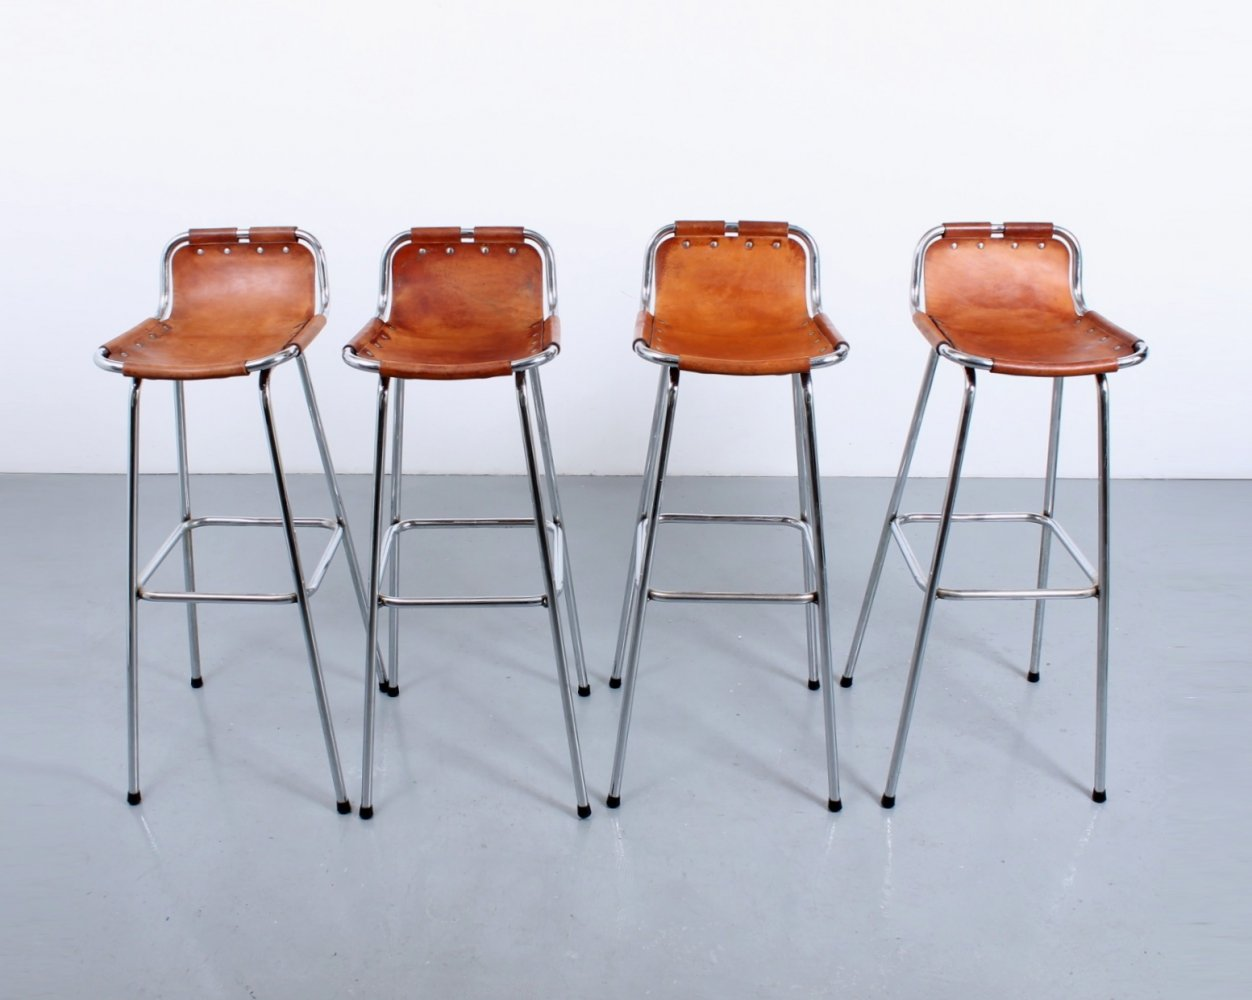 Set of 4 Les arc stools by Charlotte Perriand, 1960s